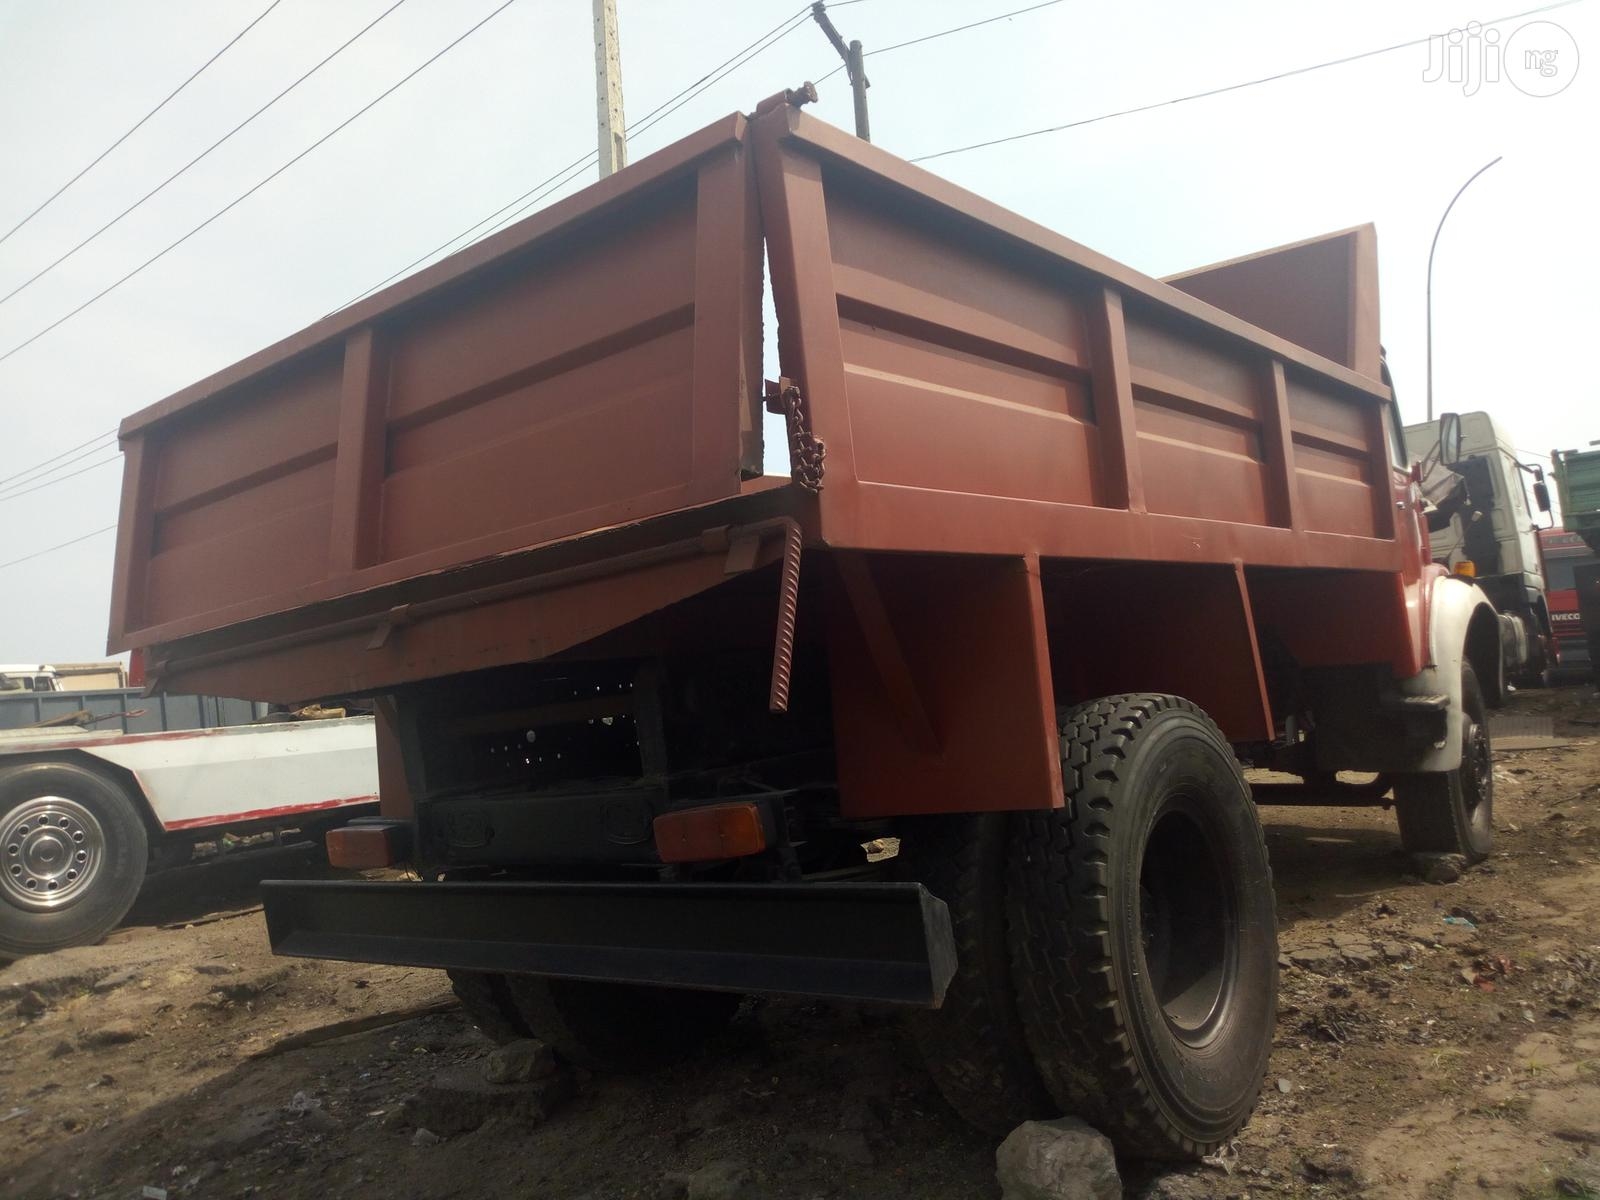 Clean Mercedes Benz 911 1986 Model Red Colour Sharp | Trucks & Trailers for sale in Apapa, Lagos State, Nigeria